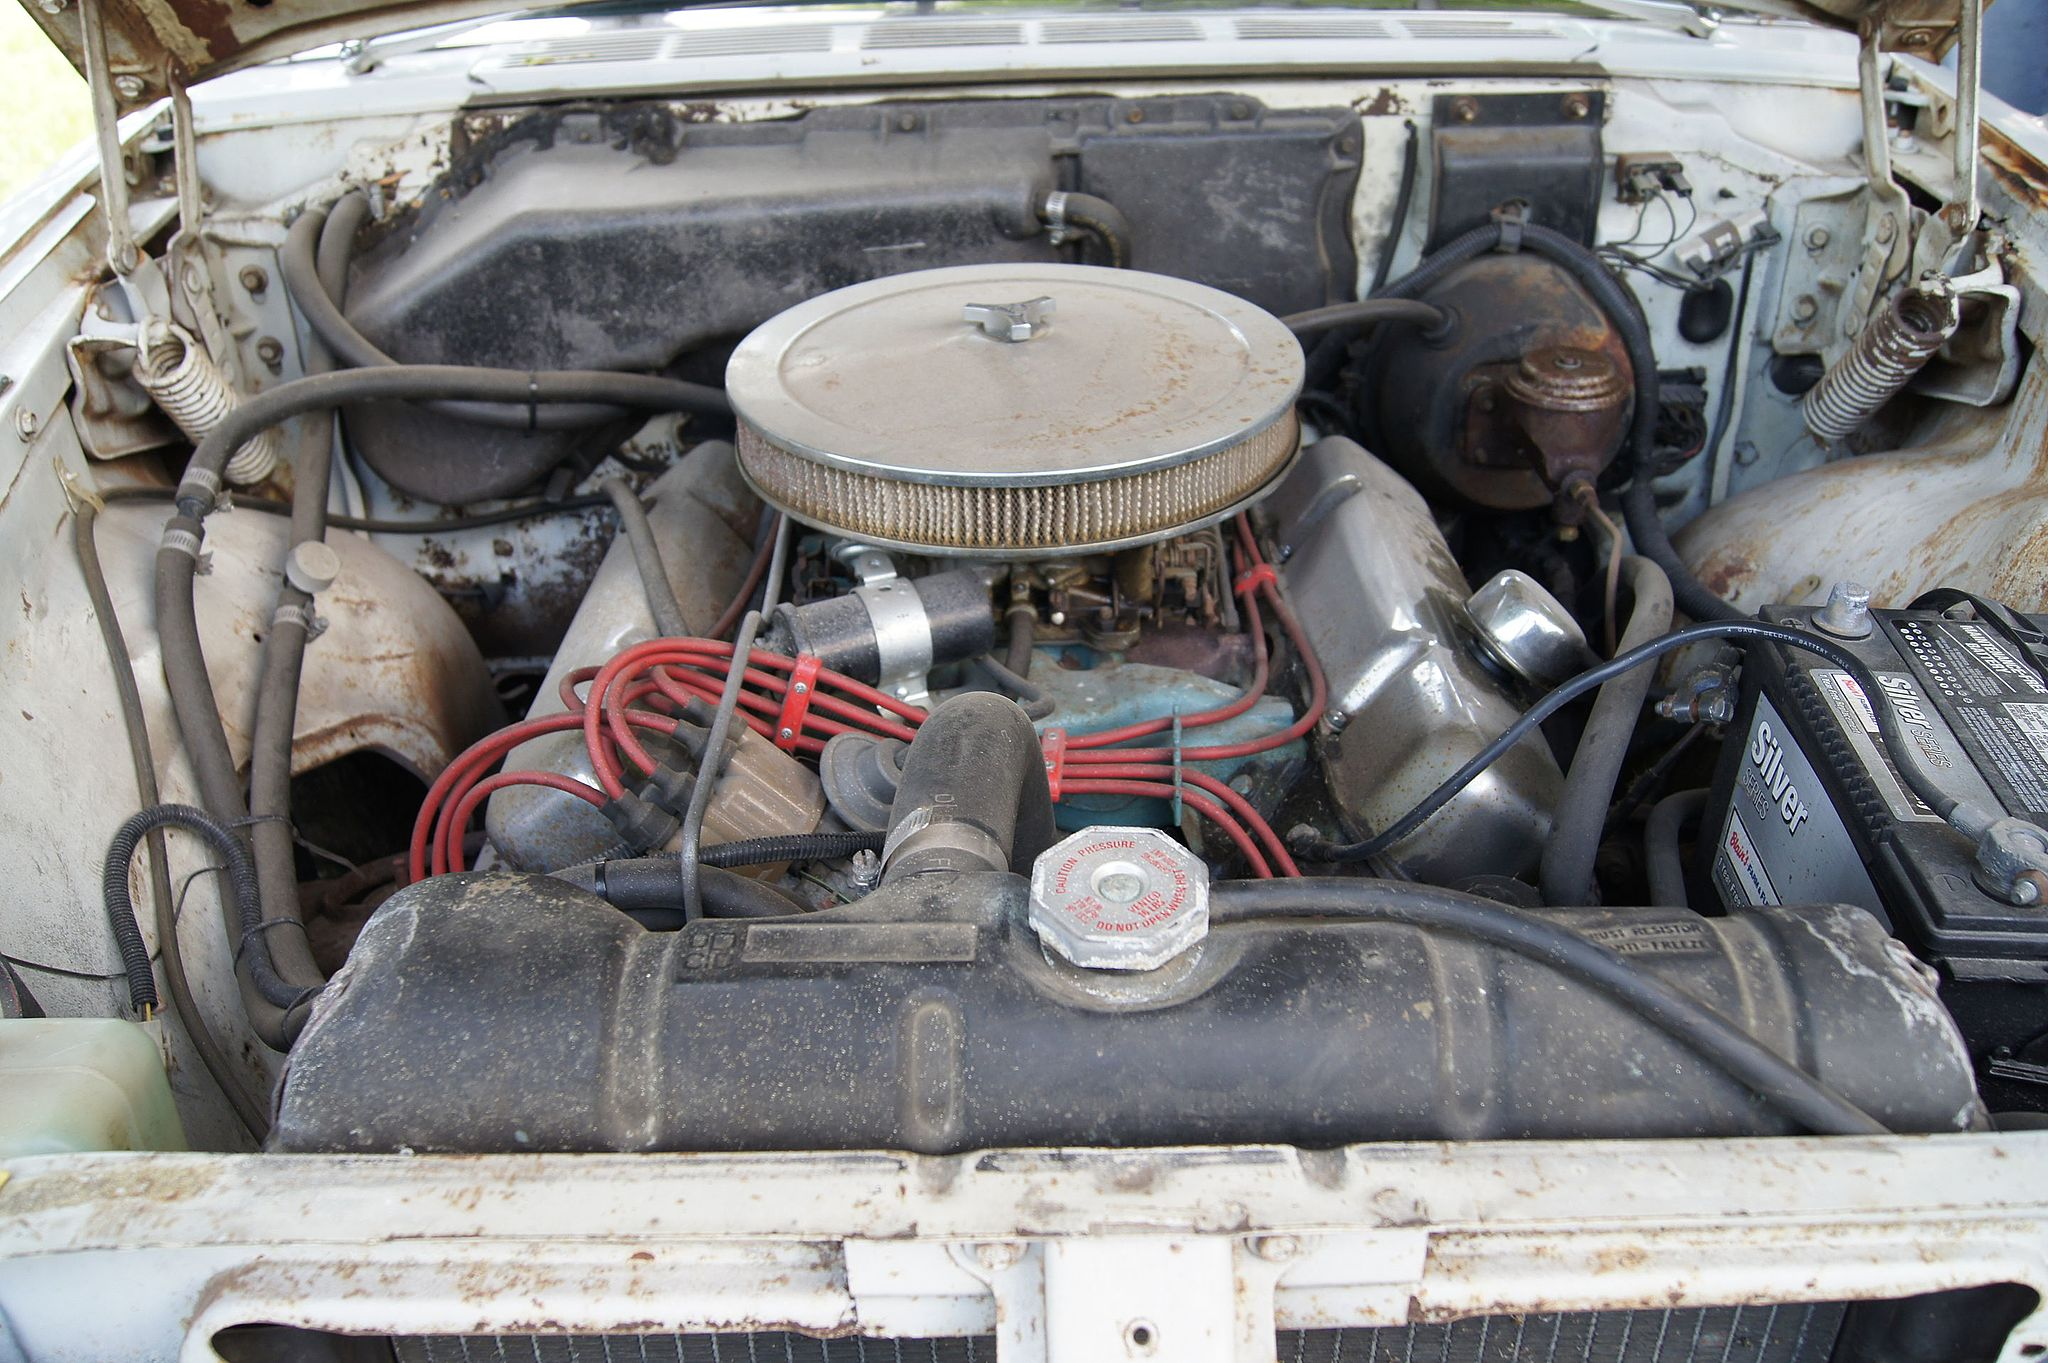 The Magnificent Mopar 413 And 426 Max Wedge Engines Hemi Distributor Wiring Diagram First Arrived In 1964 As A Competition Only Option But Street Showed Up 1965 To Replace Stayed Strong At